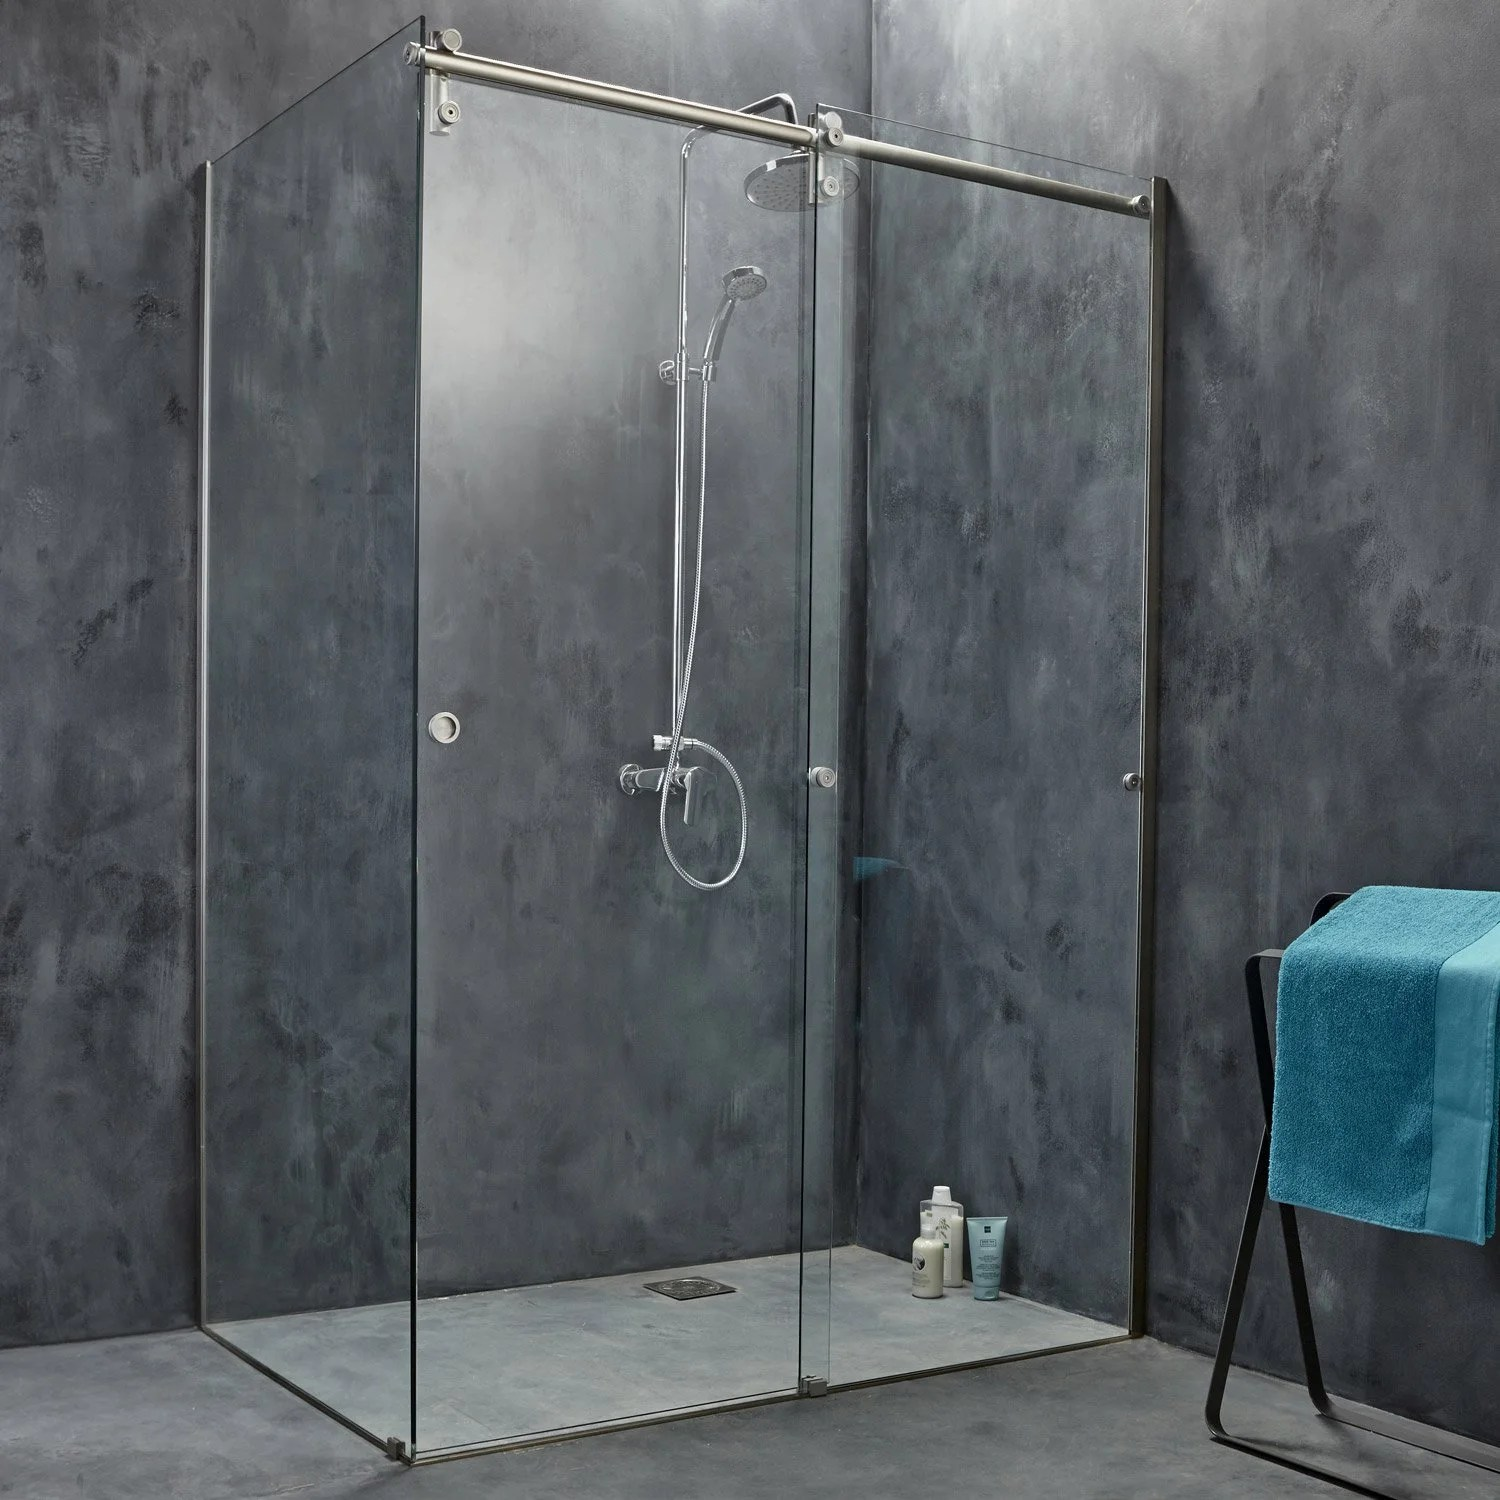 Porte Coulissante Magasin Porte De Douche Coulissante 139 Cm Transparent Ellipse 2